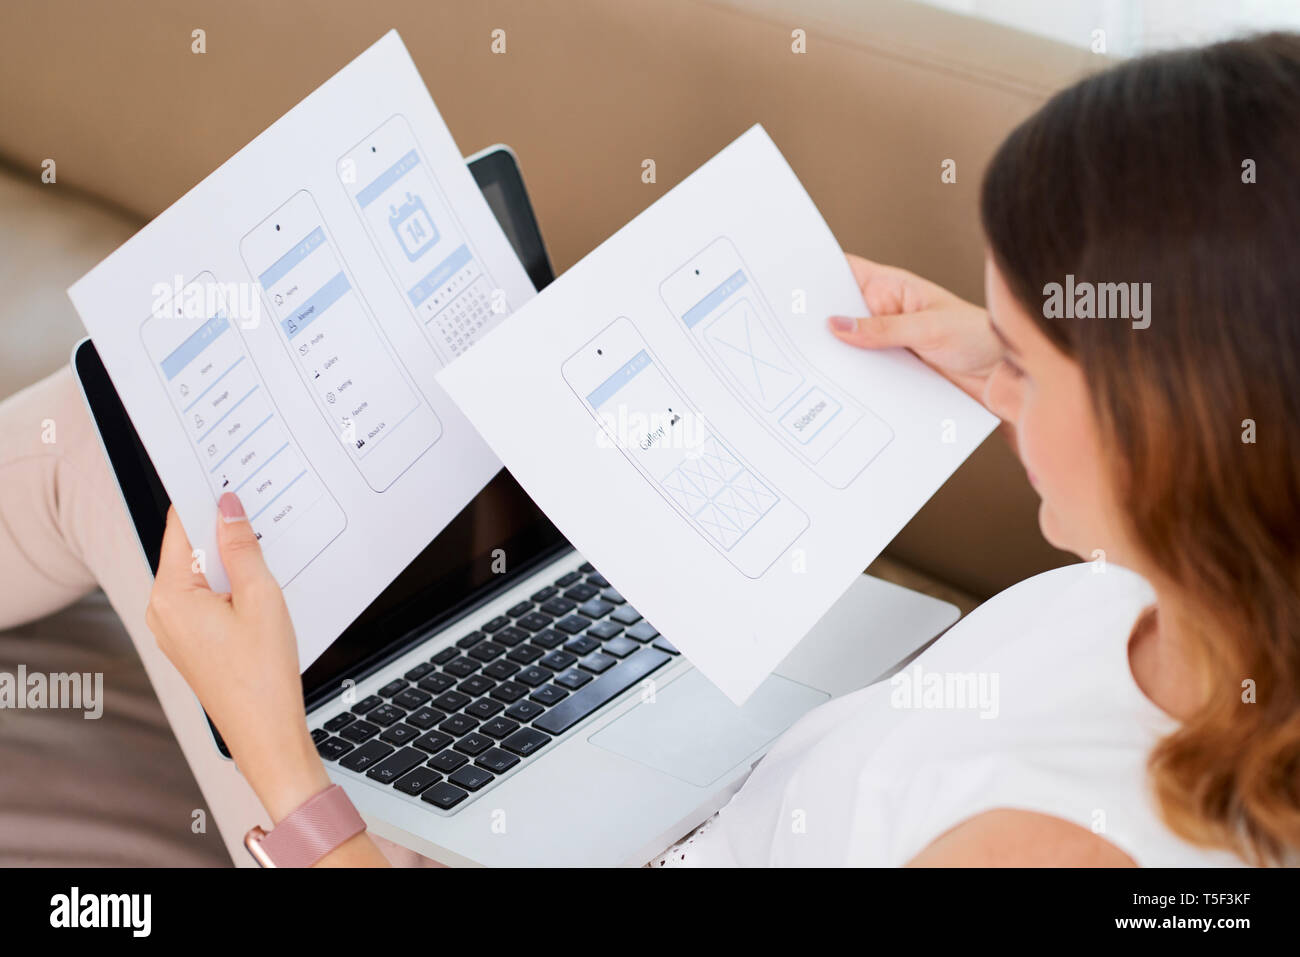 Woman checking sample of mobile interface - Stock Image